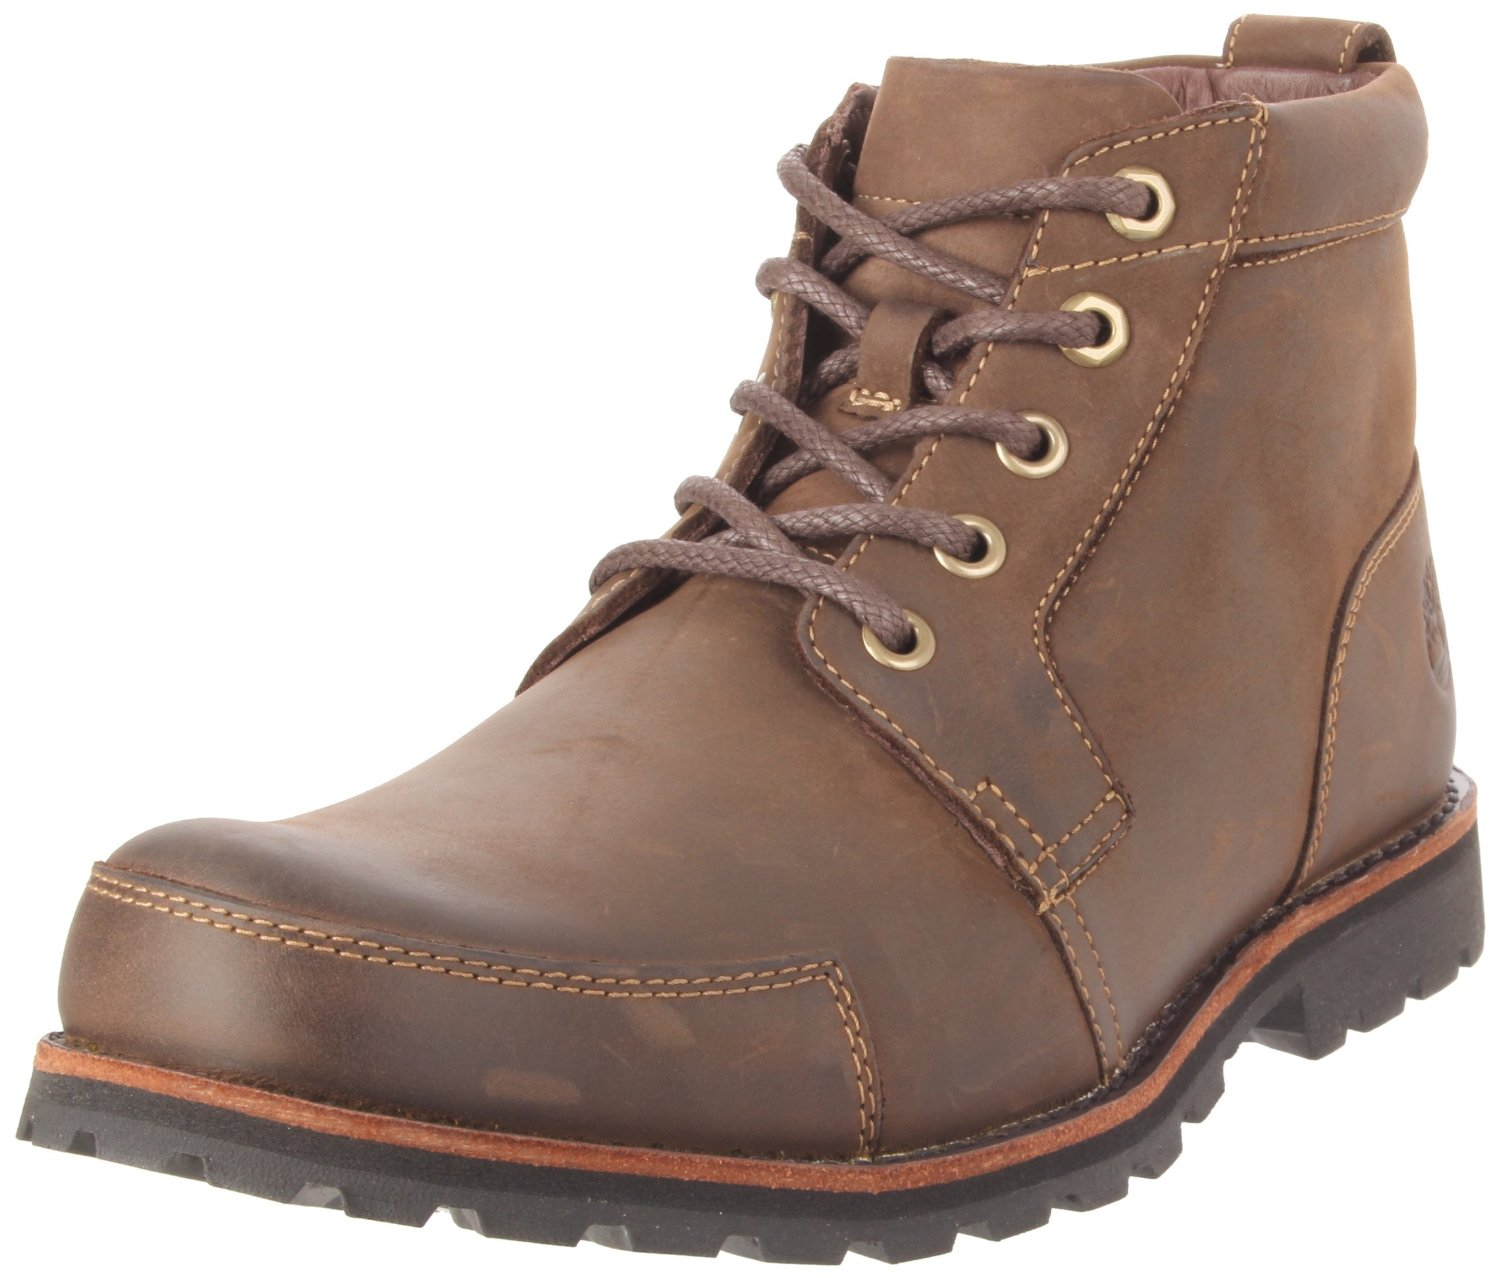 Model  BOOTS WOMENS TIMBERLAND BOOTS AND SHOES  BRAND NEW Amp 100 ORIGINAL